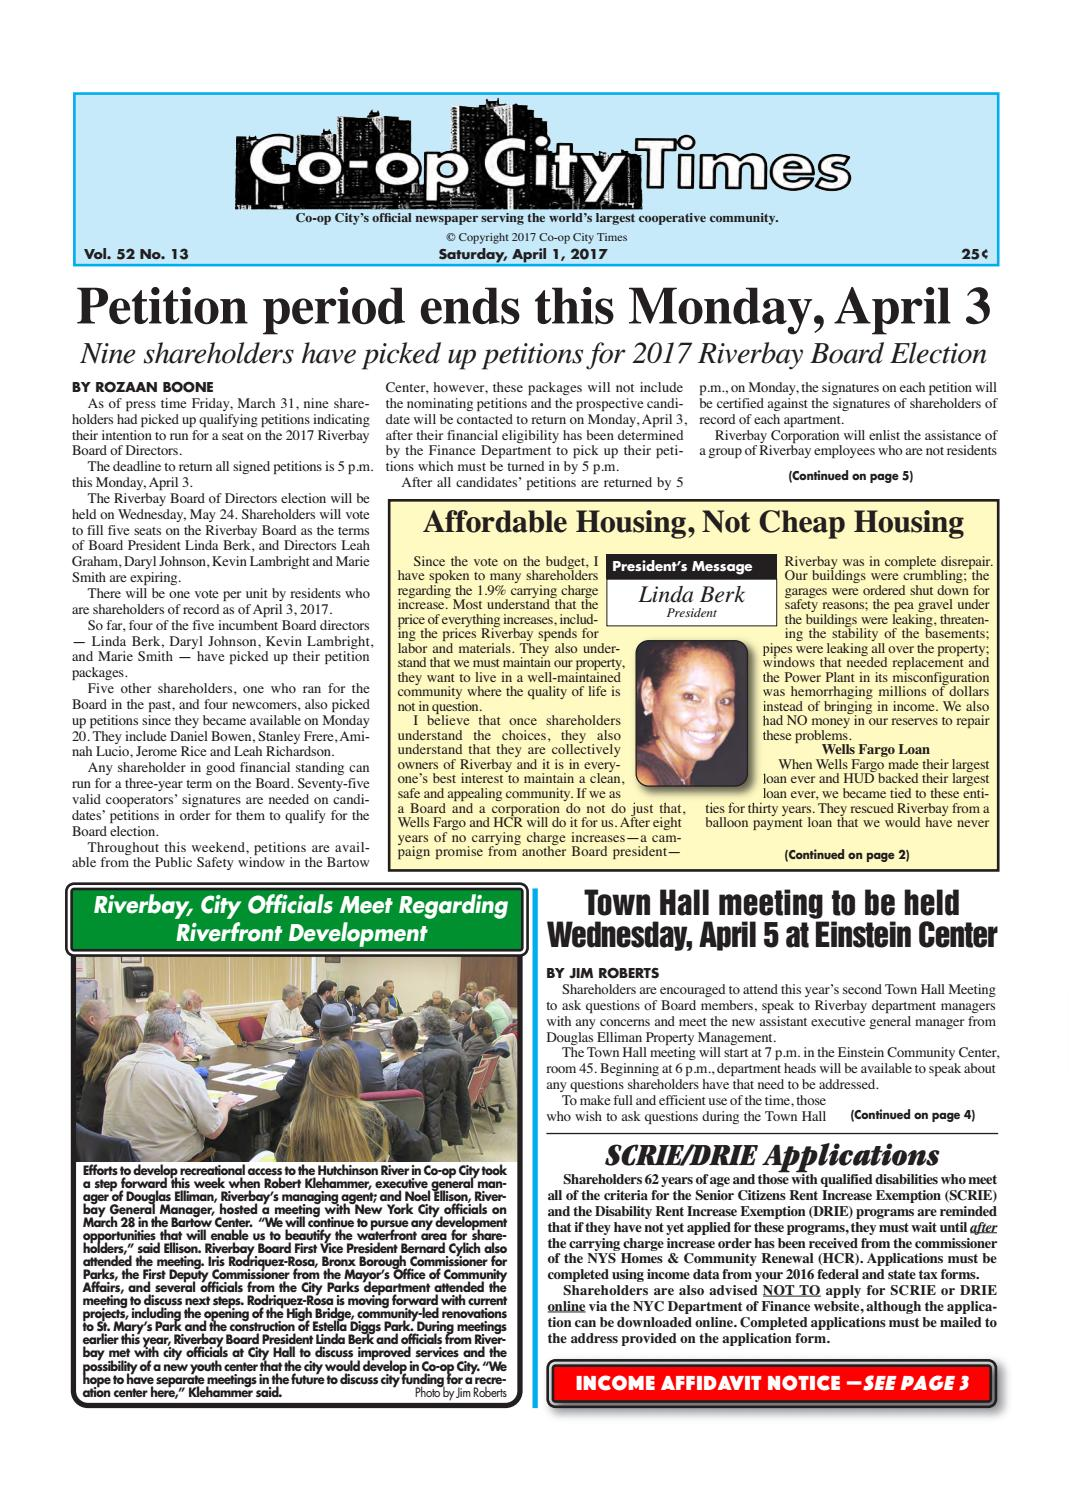 Co-op City Times 04/01/17 by Co-op City Times - issuu